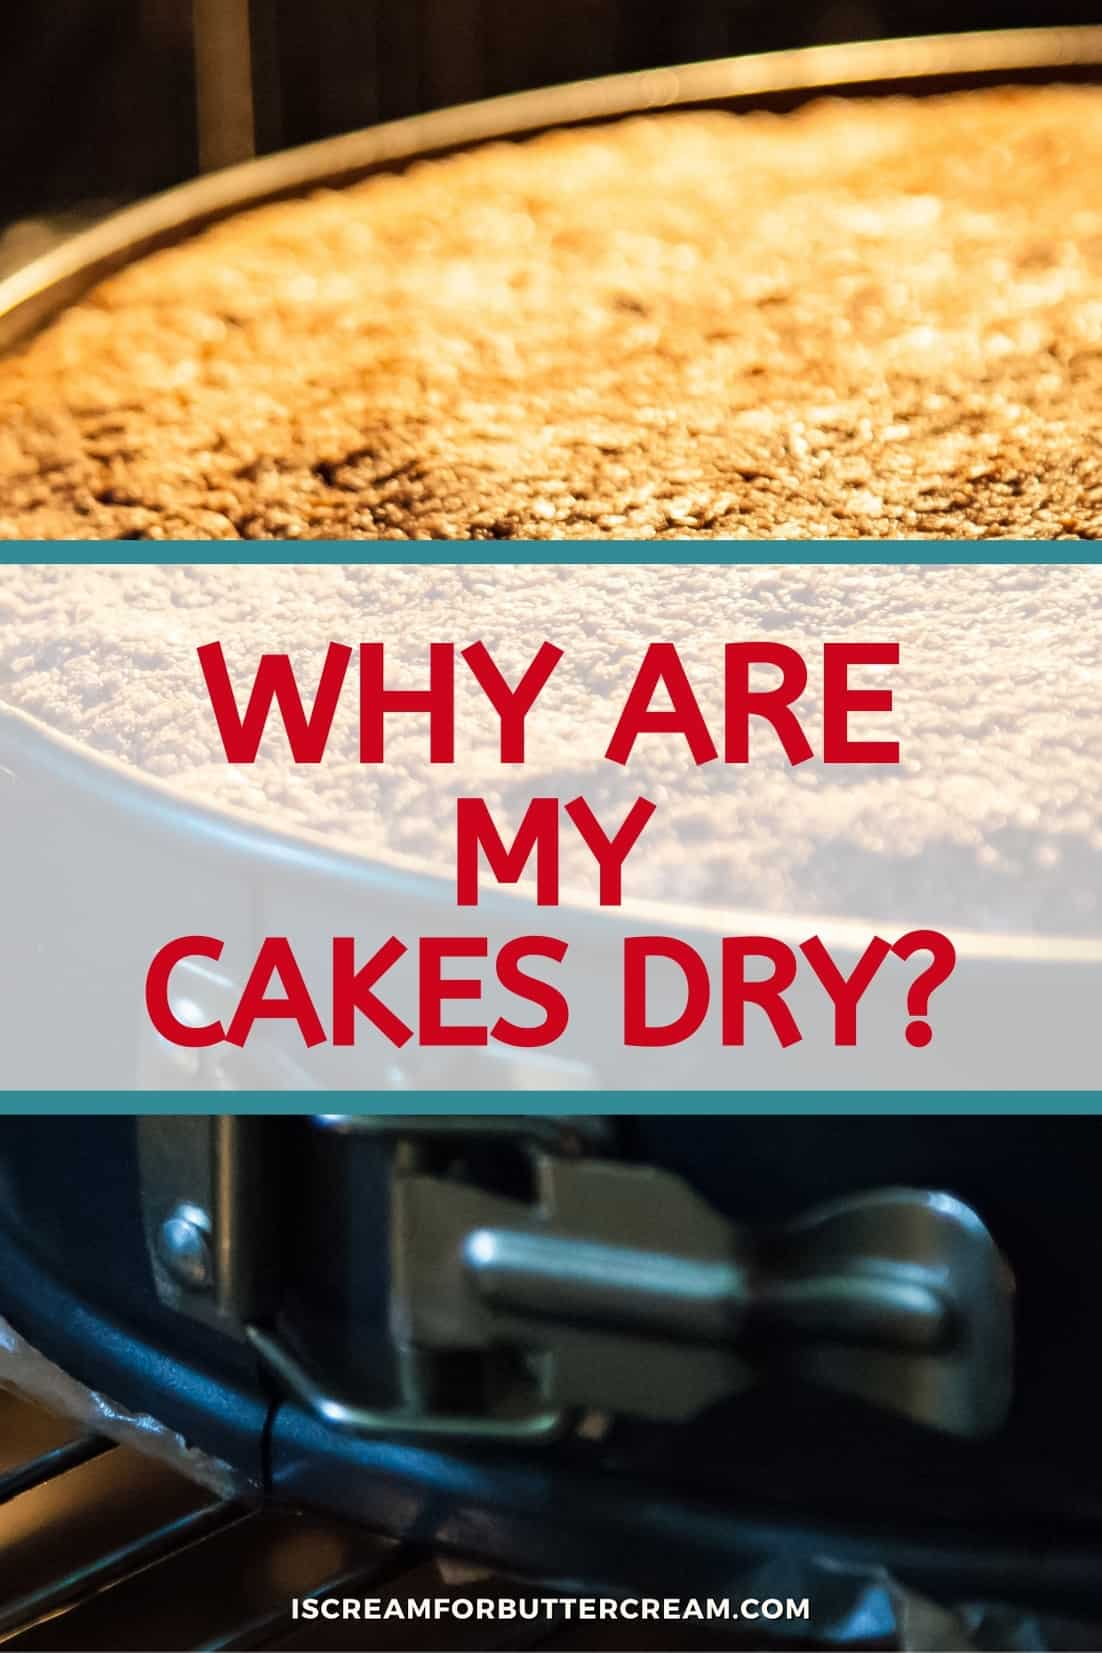 why are cakes dry pinterest graphic with cake in oven